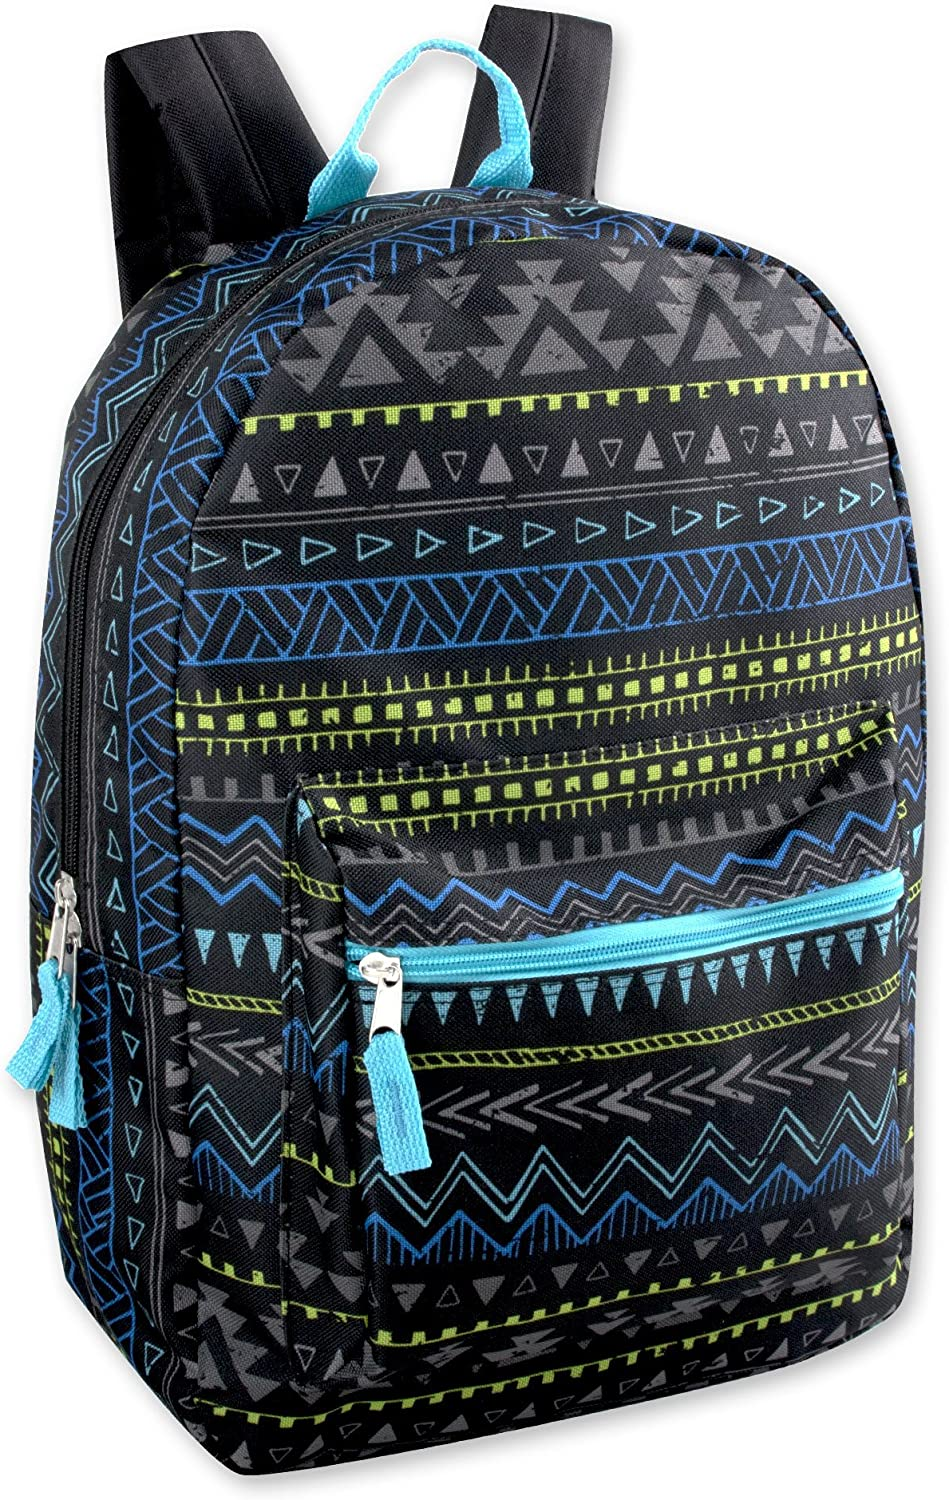 Trailmaker Boys Printed 17 Inch Backpack with Pencil Pouch for School, Travel, Hiking, Camping